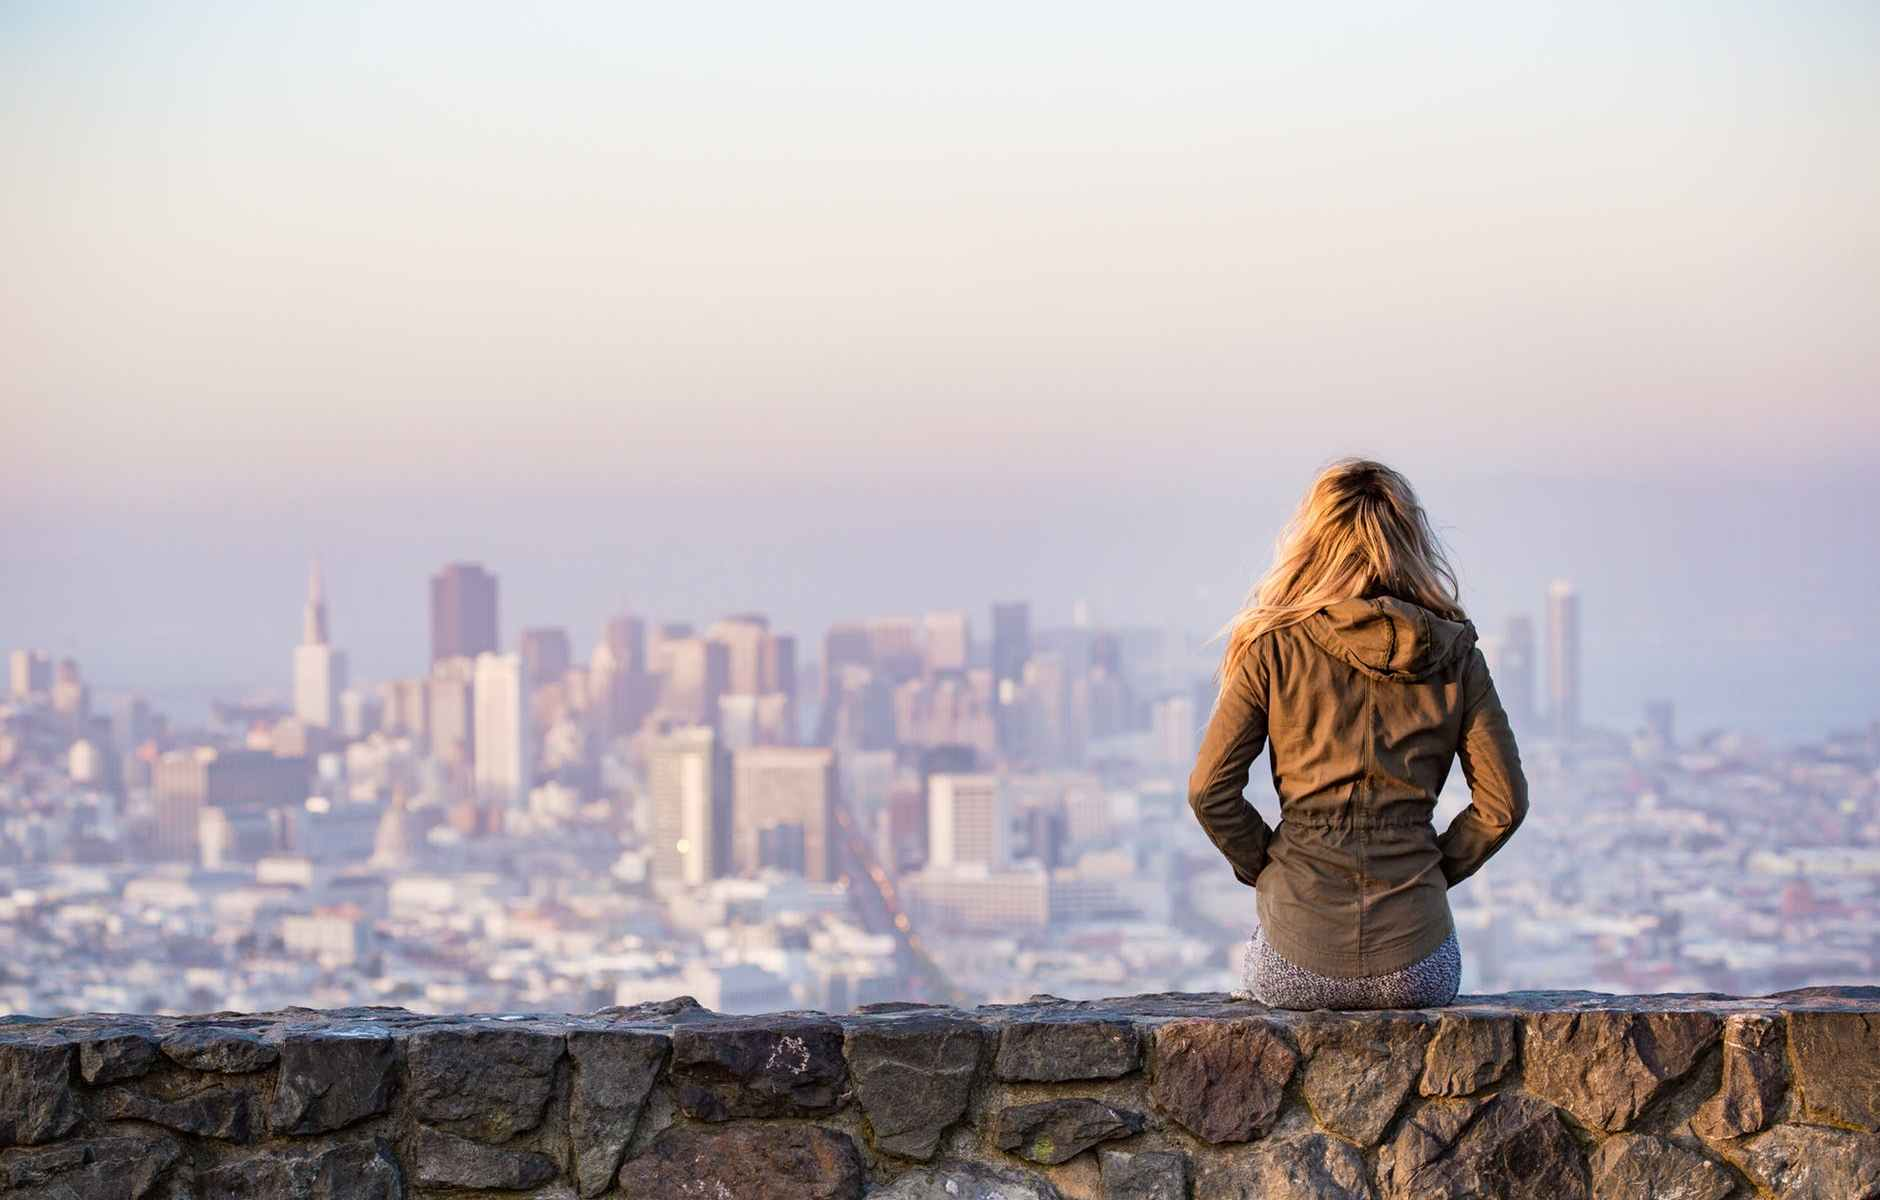 Young woman overlooking a city